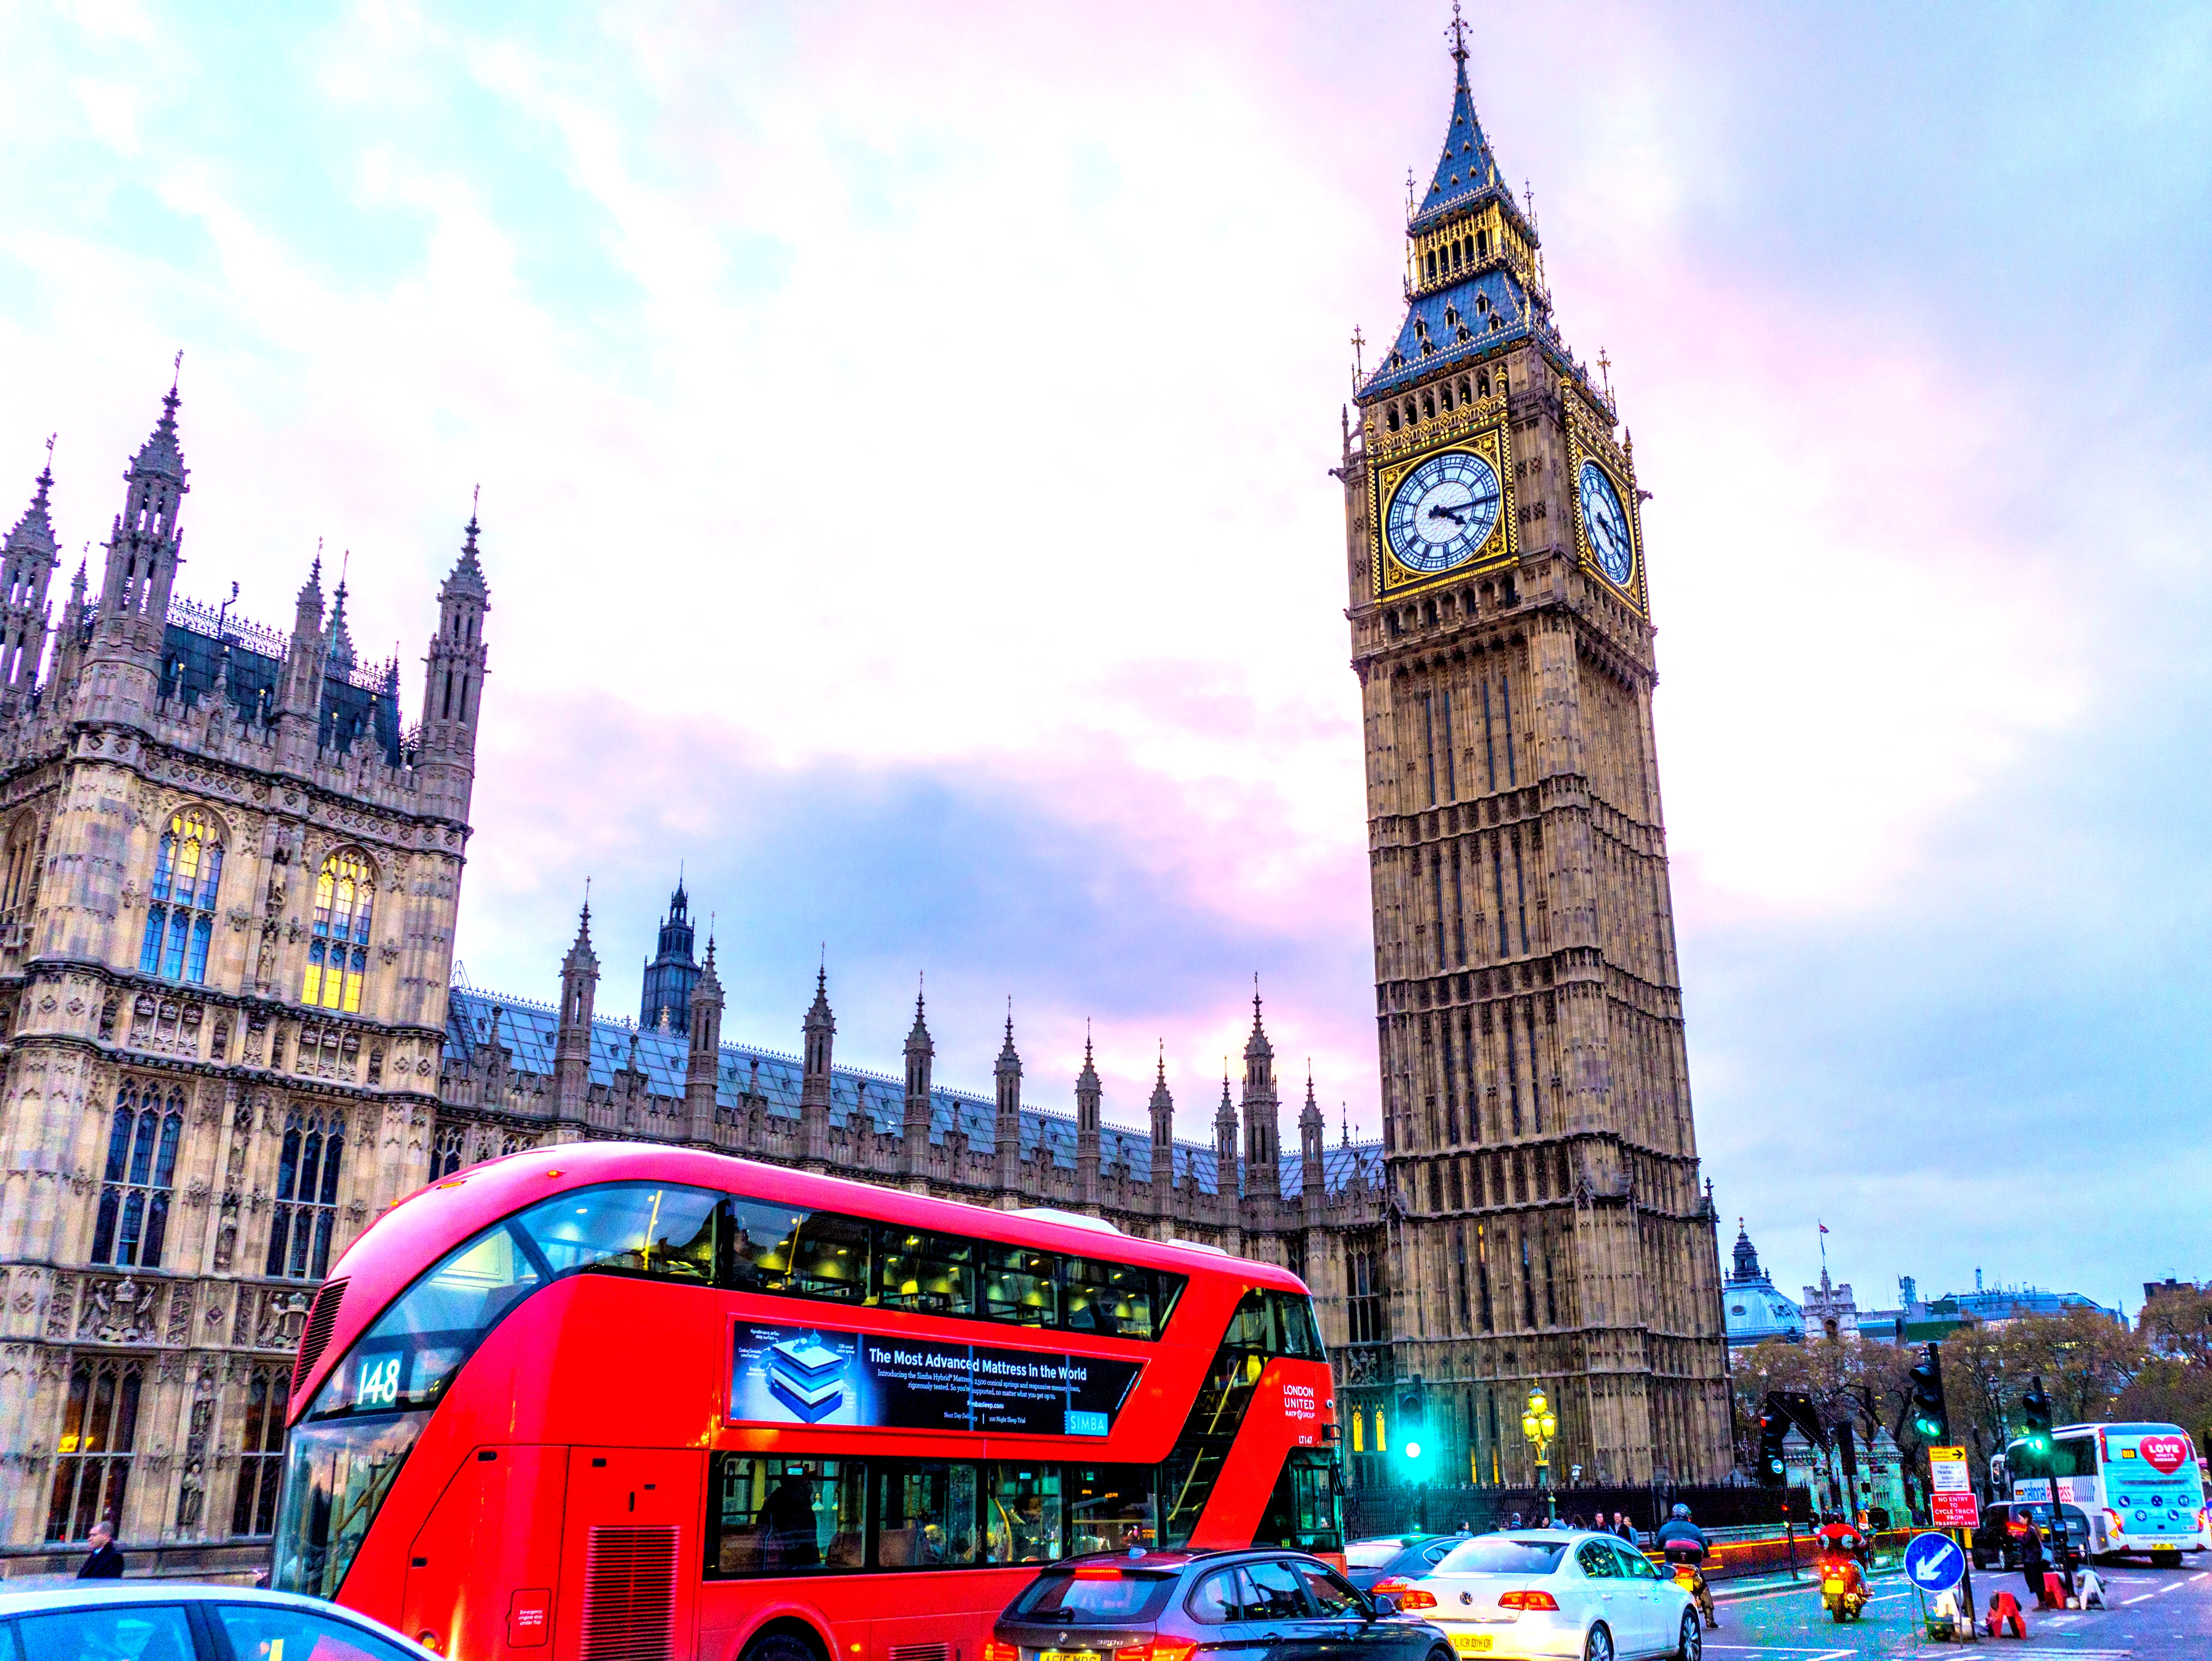 Get attractive Europe & UK Tour Packages from India at very affordable price by Royal Omania Tours & Travels, Visit: London , Amsterdam, Colonge, PARIS, STUTTGART,ENGELBERG, Mt. Titlis, VADUZ, INNSBRUCK, MESTRE,VENICE, PISA, FLORENCE, ROME